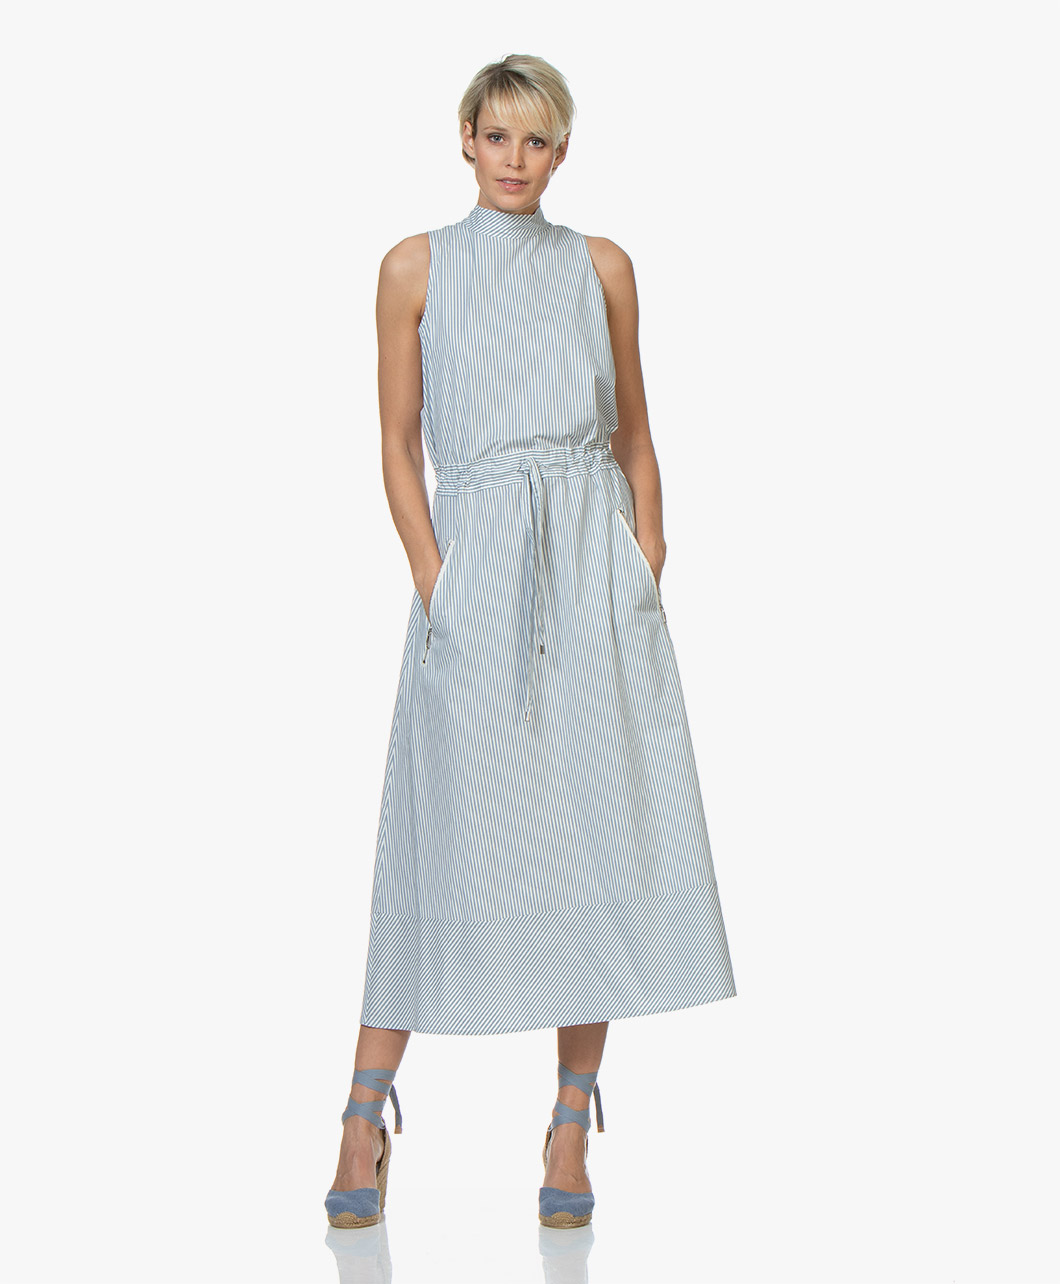 50665b5d83b2 BOSS Cassina Striped Poplin Midi Dress - Bright Blue - cassina | 50405223  439 - bright